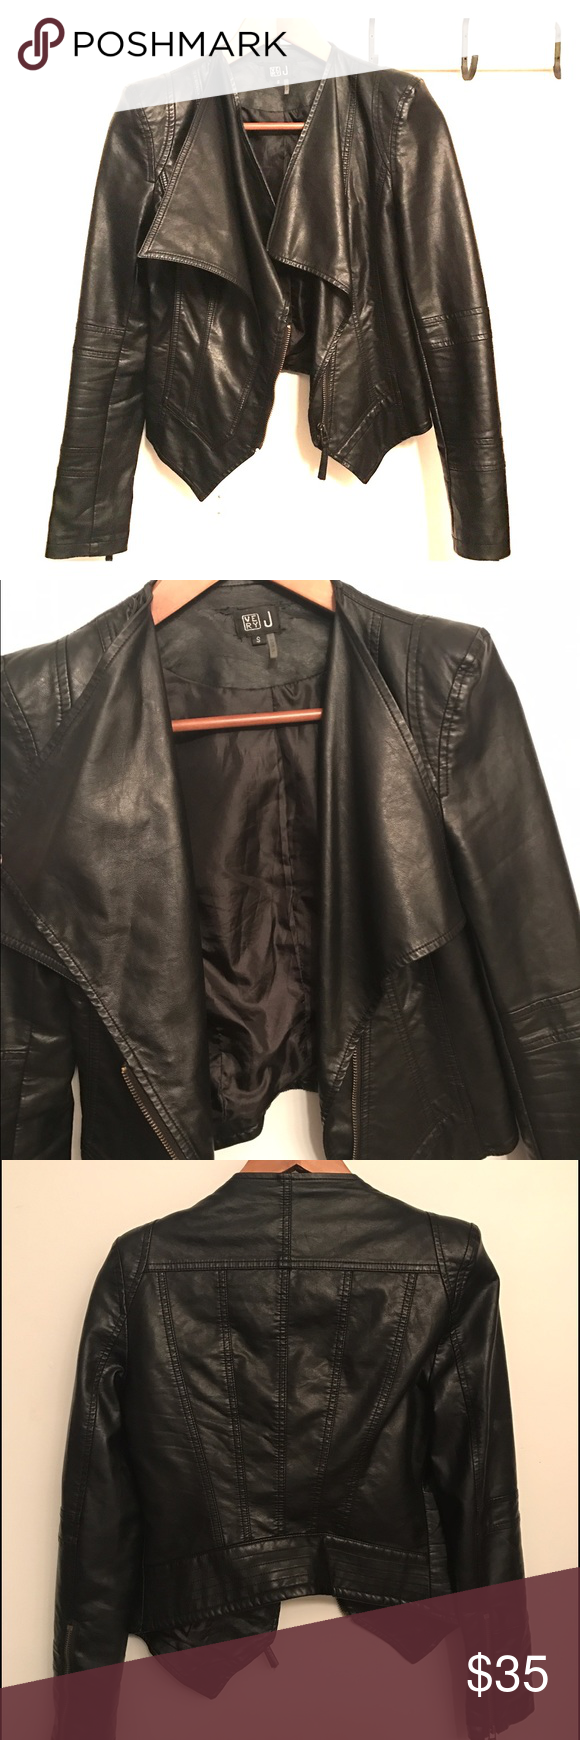 Faux leather jacket One of my favs that goes with everything and is a must have. Selling only to make room in my closet. Very J Jackets & Coats